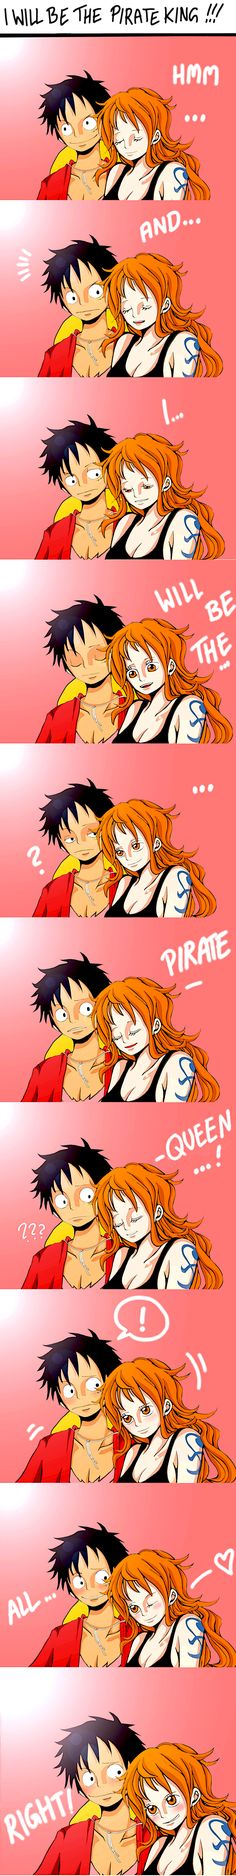 I don't ship them as I ship him and the pirate empress but it's cute